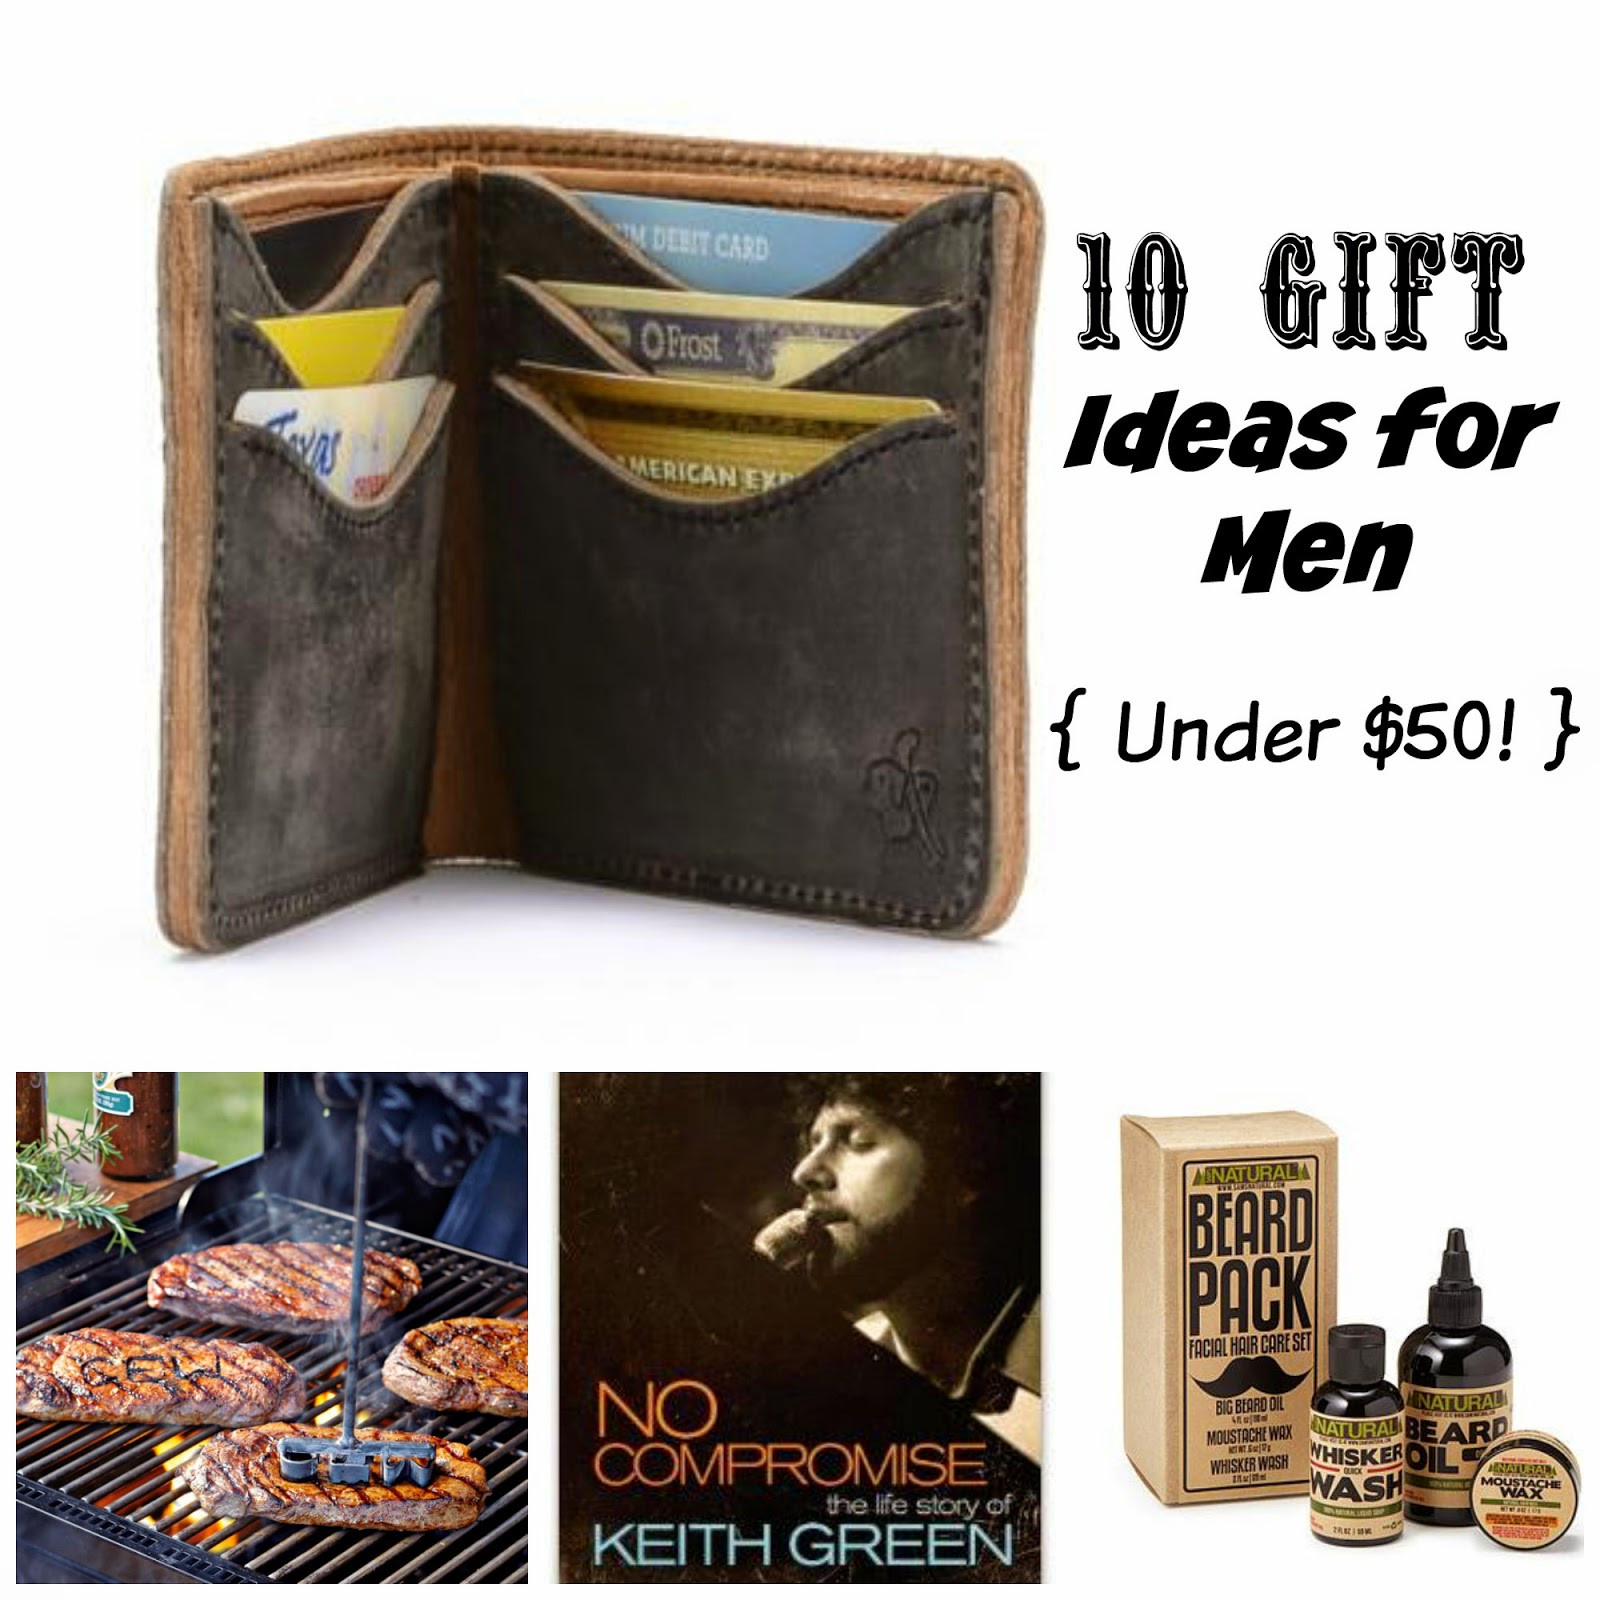 Christmas Gift Ideas For Couples Under 50  Where Joy Is 10 Gift Ideas for Men Under $50